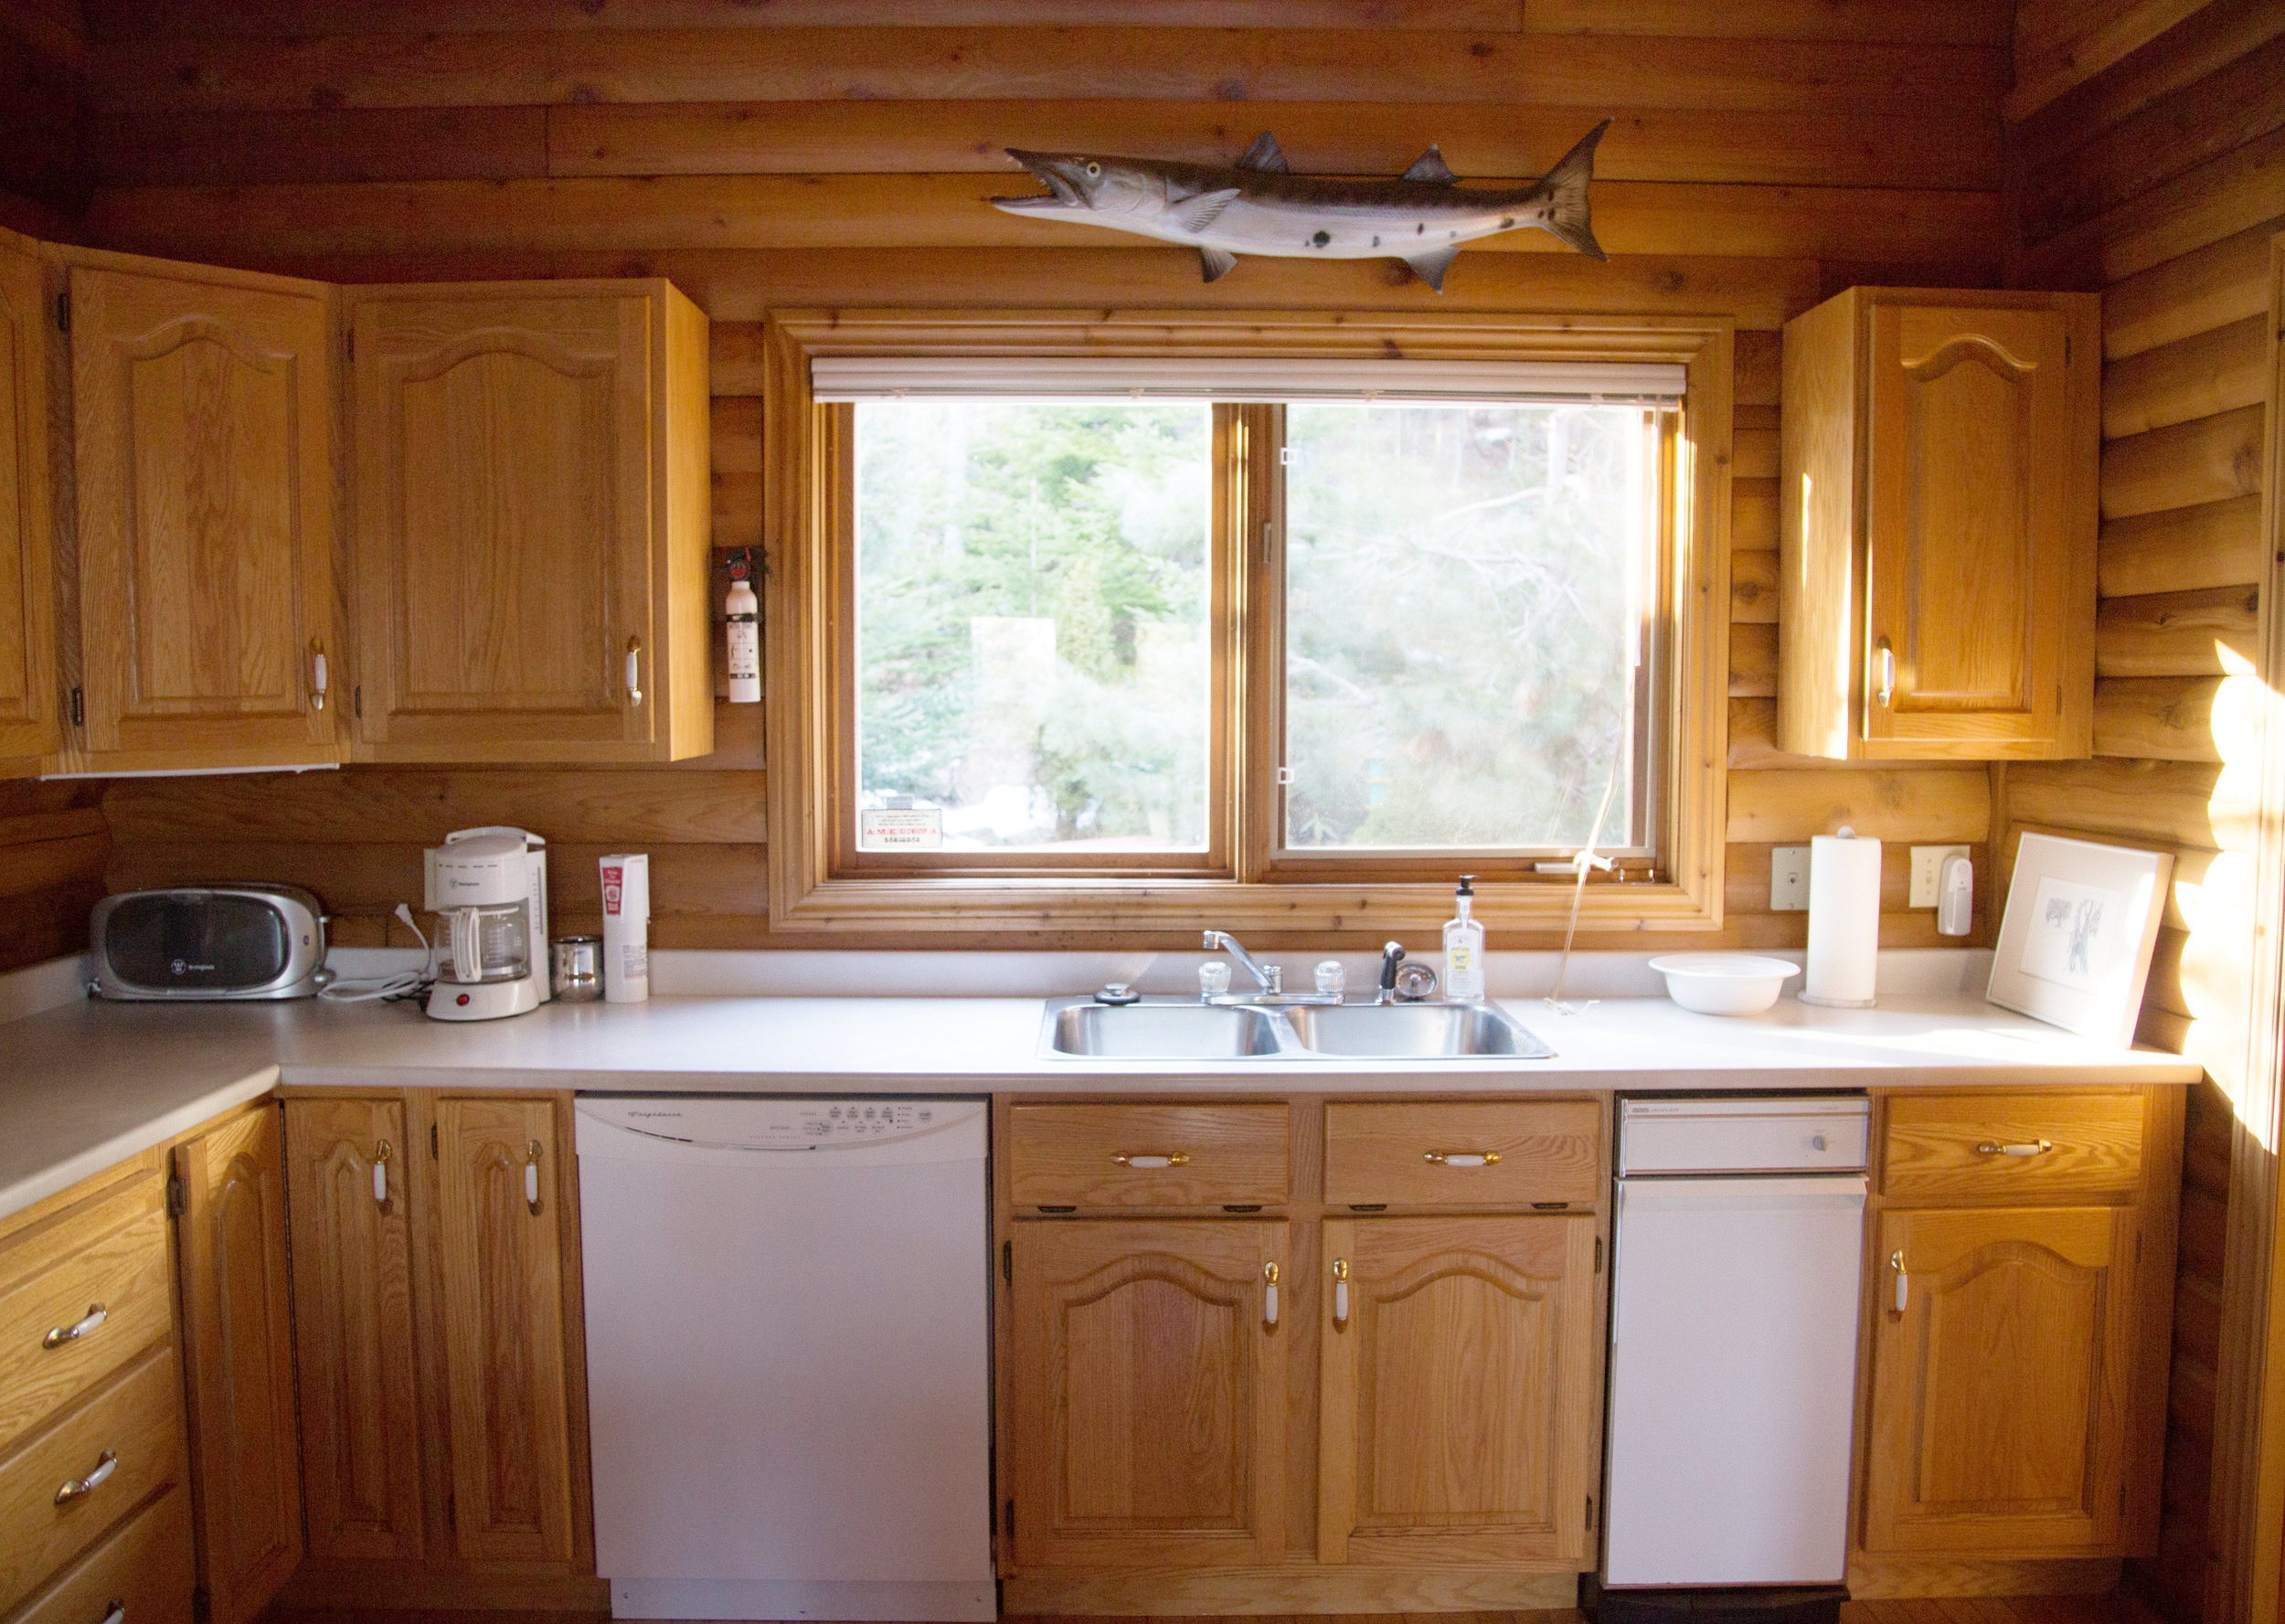 cape breton island rental cottage 45 (1 of 1).jpg